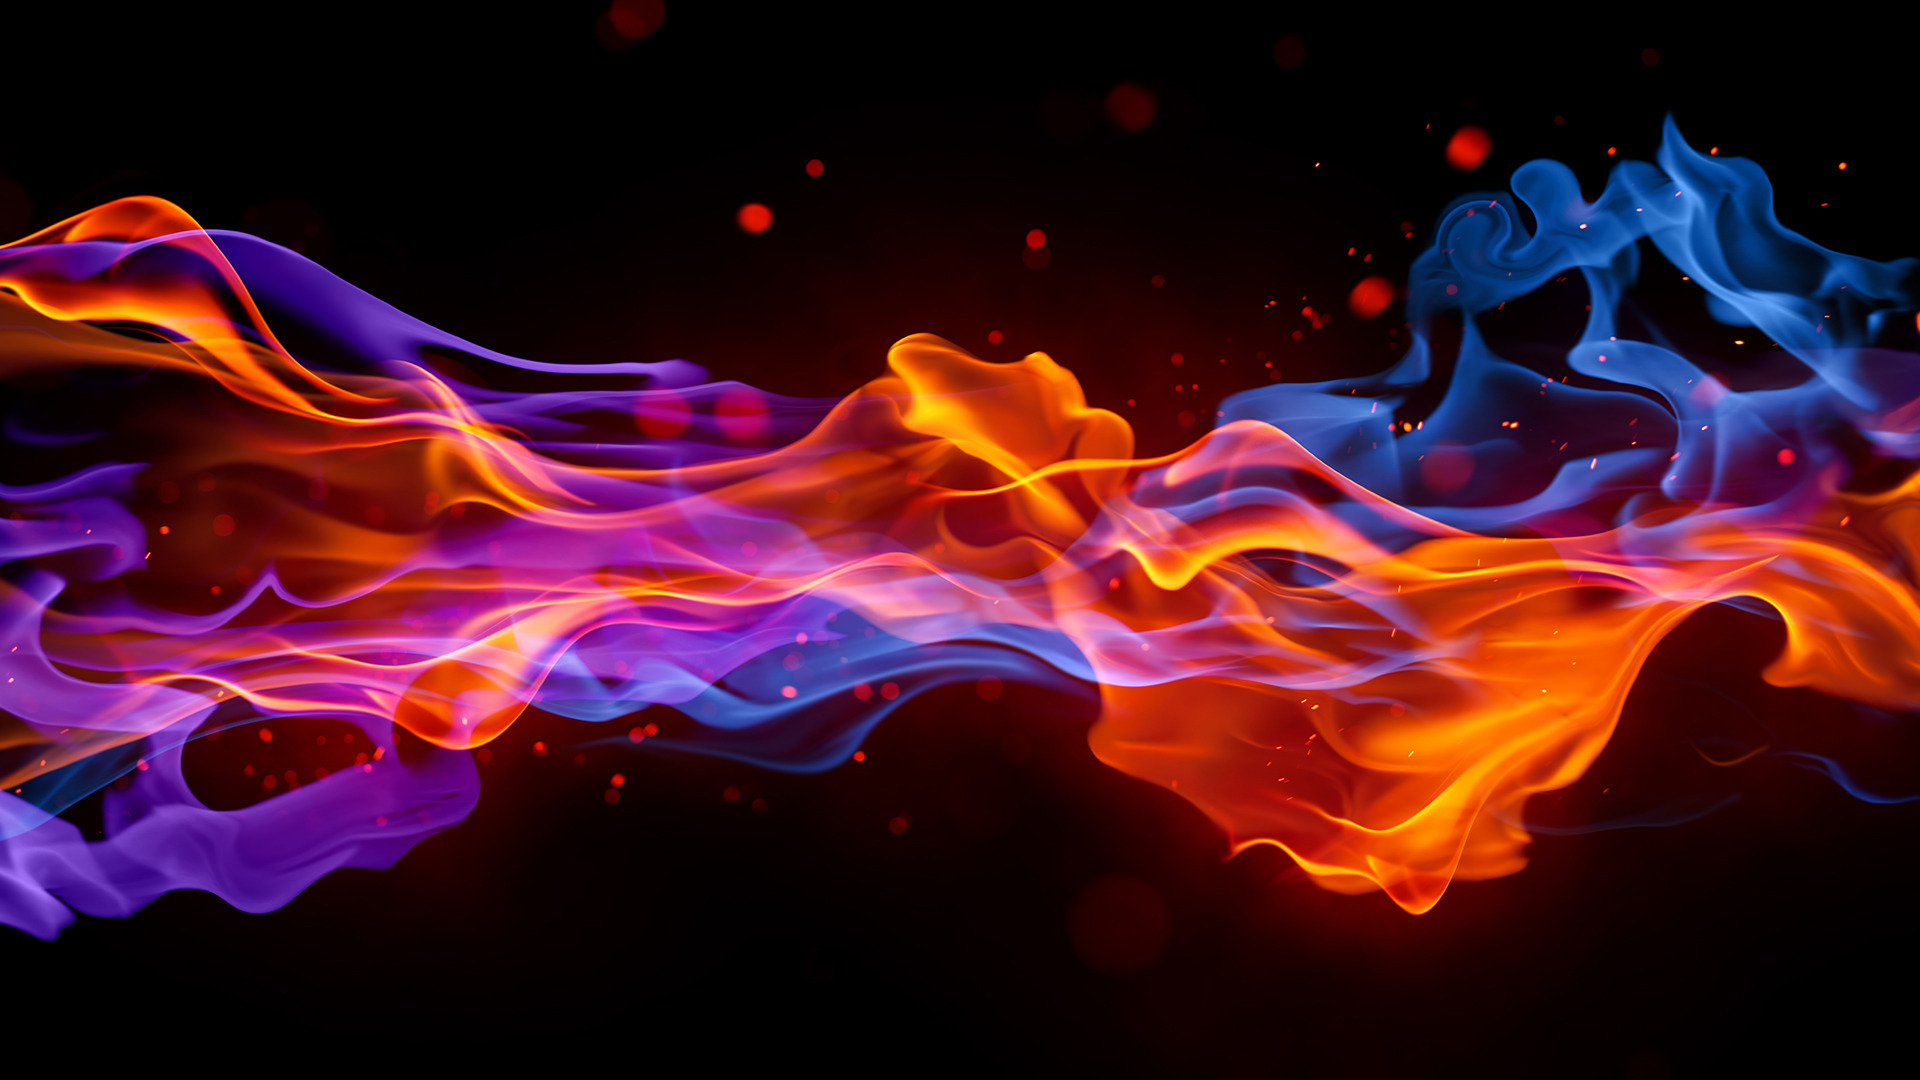 red and blue fire Wallpaper HD Wallpapers 1920x1080